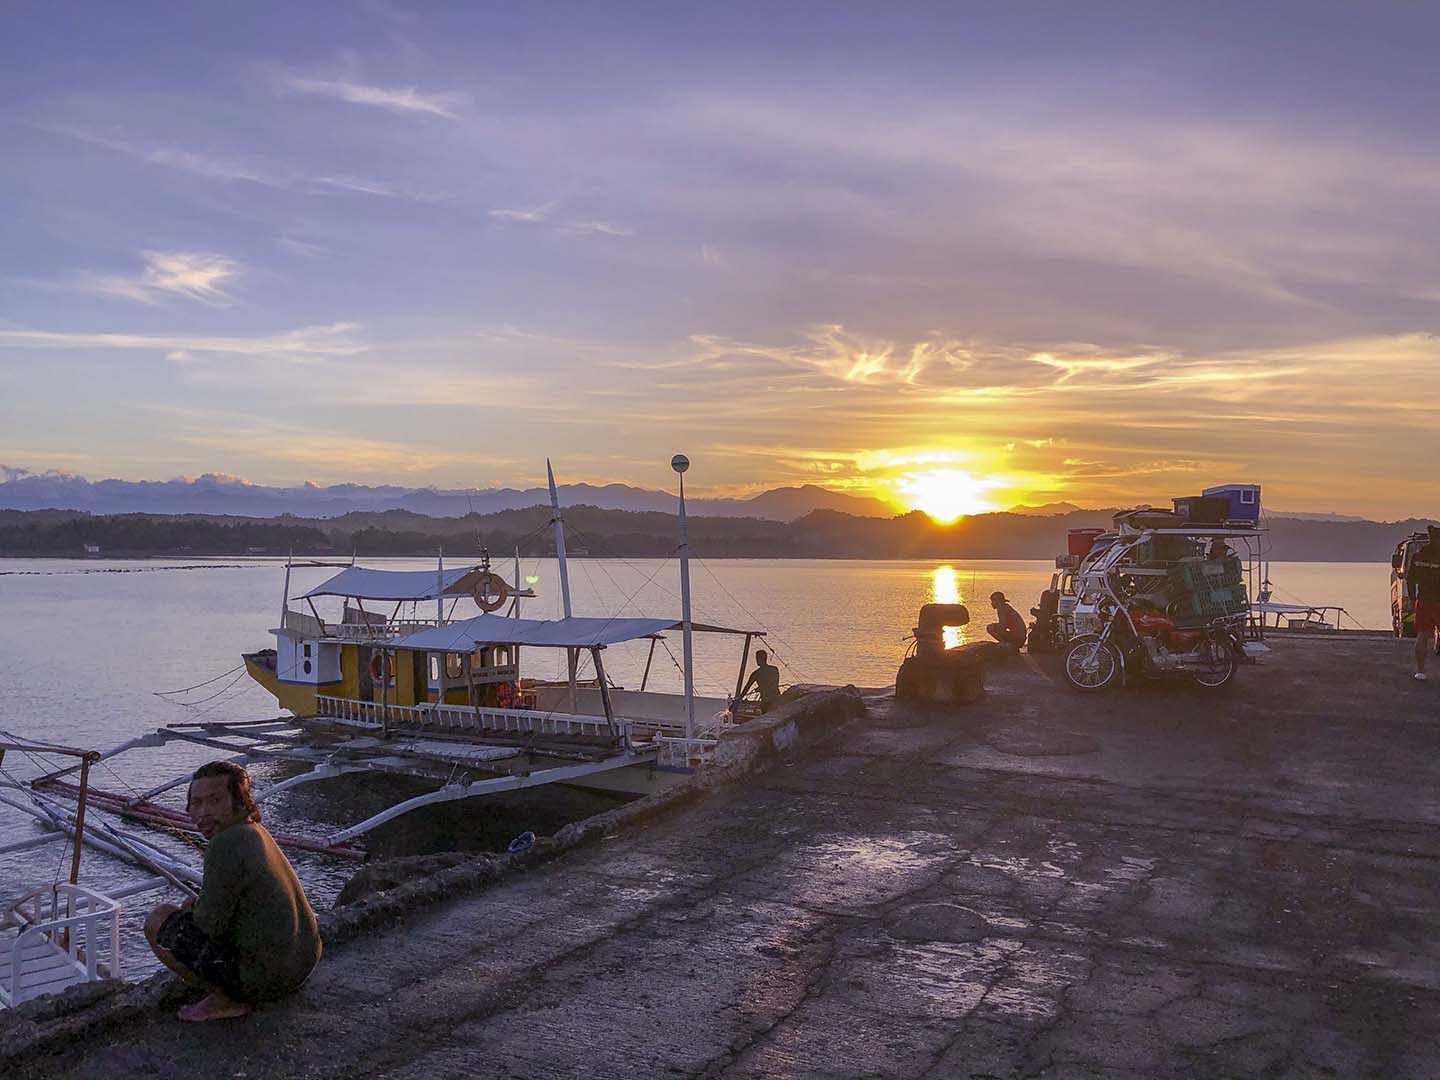 Sunrise at the pier in Sablayan, Occidental Mindoro